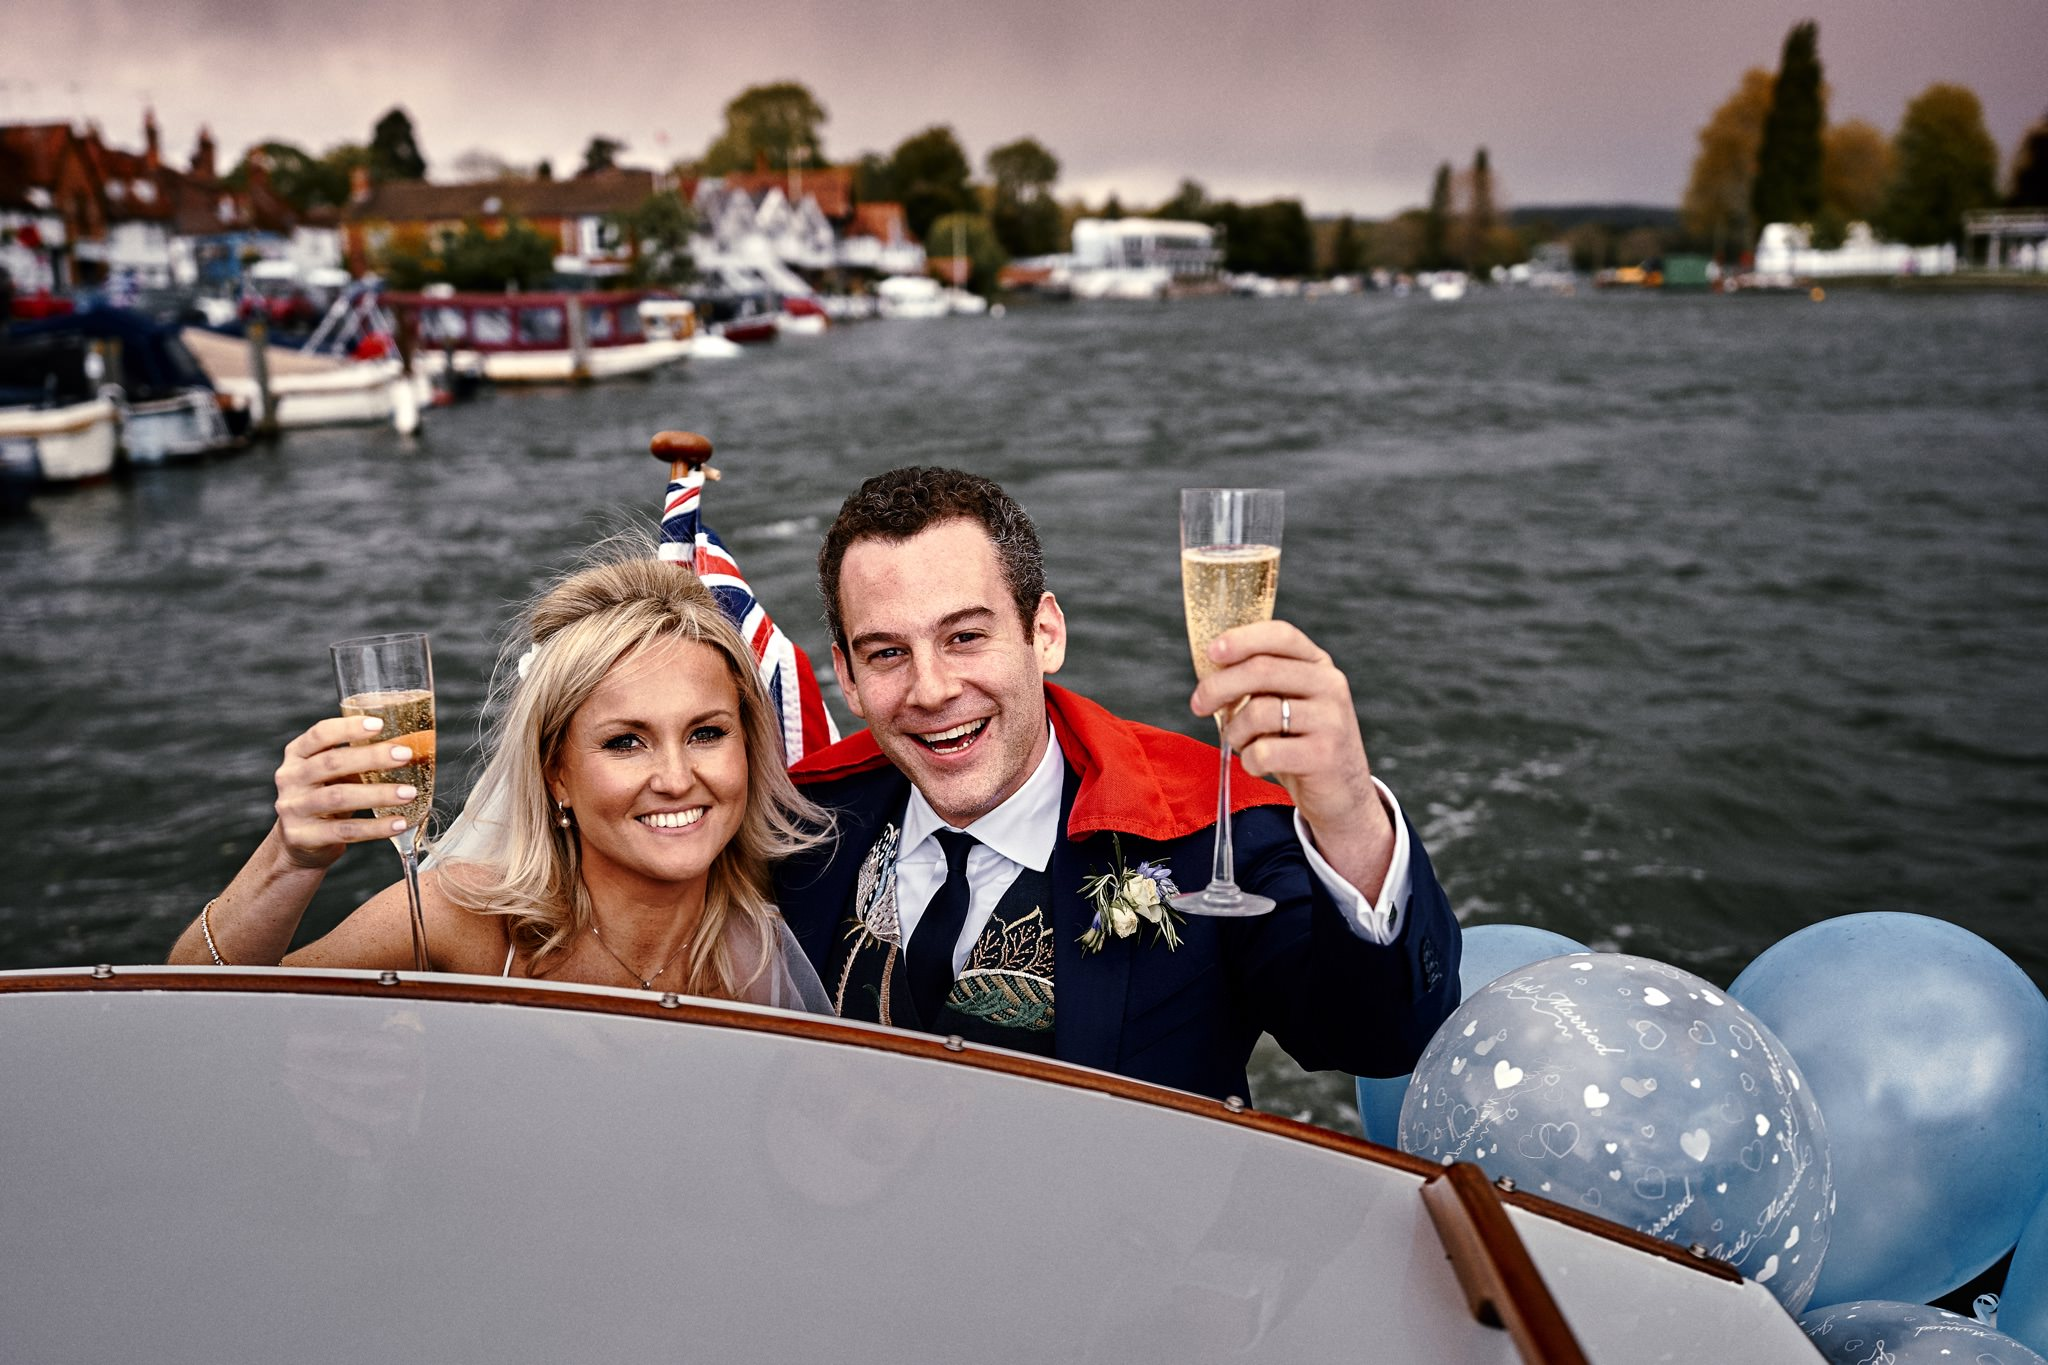 Bride and groom celebrate after their wedding on a boat on their way to Temple Island, Henley-on-Thames